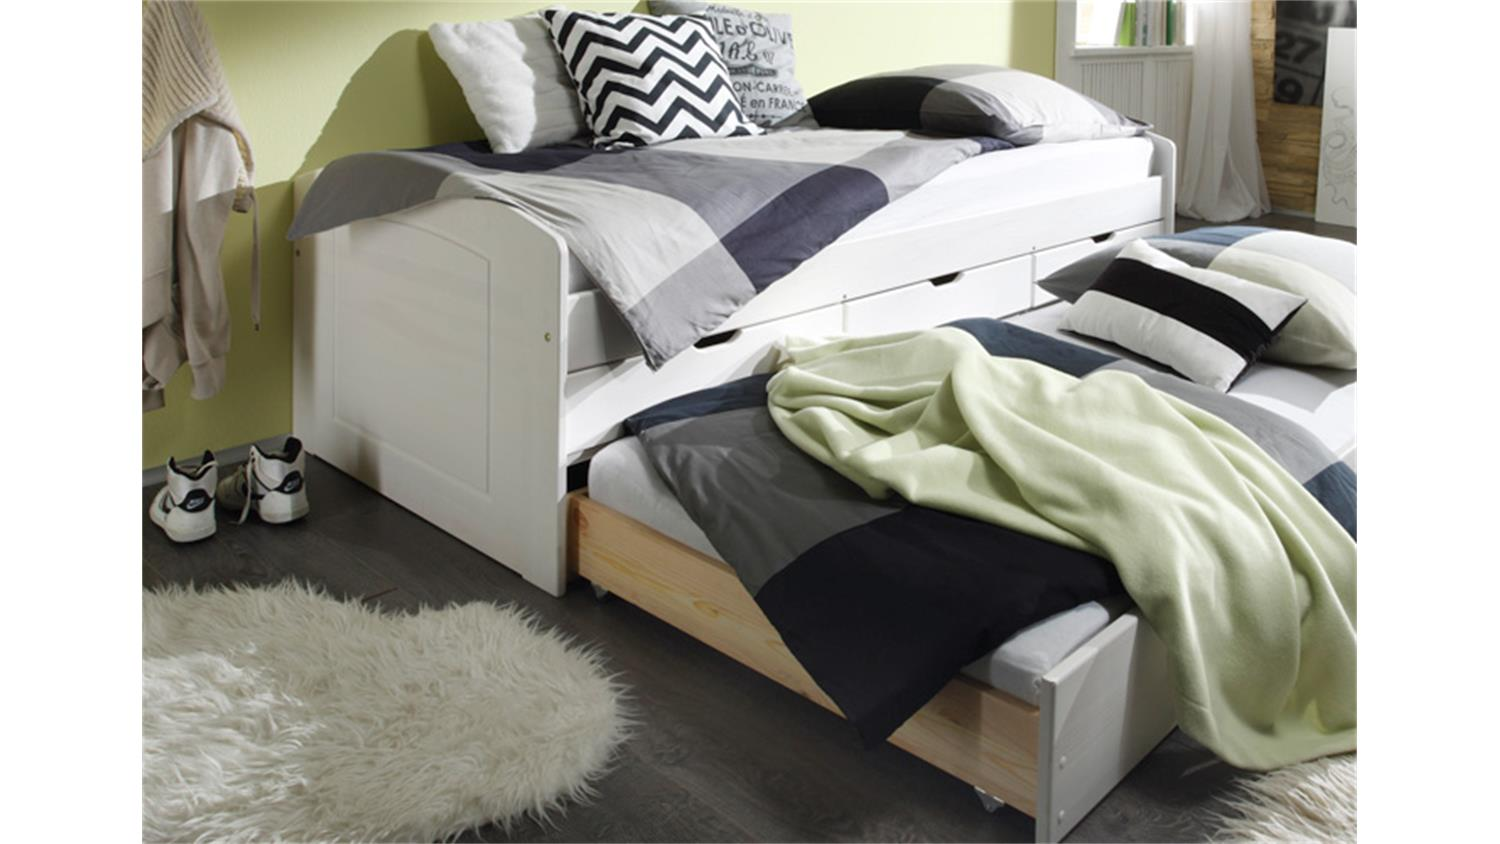 tandemliege jessy bett kinderbett in kiefer wei 90x200 cm. Black Bedroom Furniture Sets. Home Design Ideas